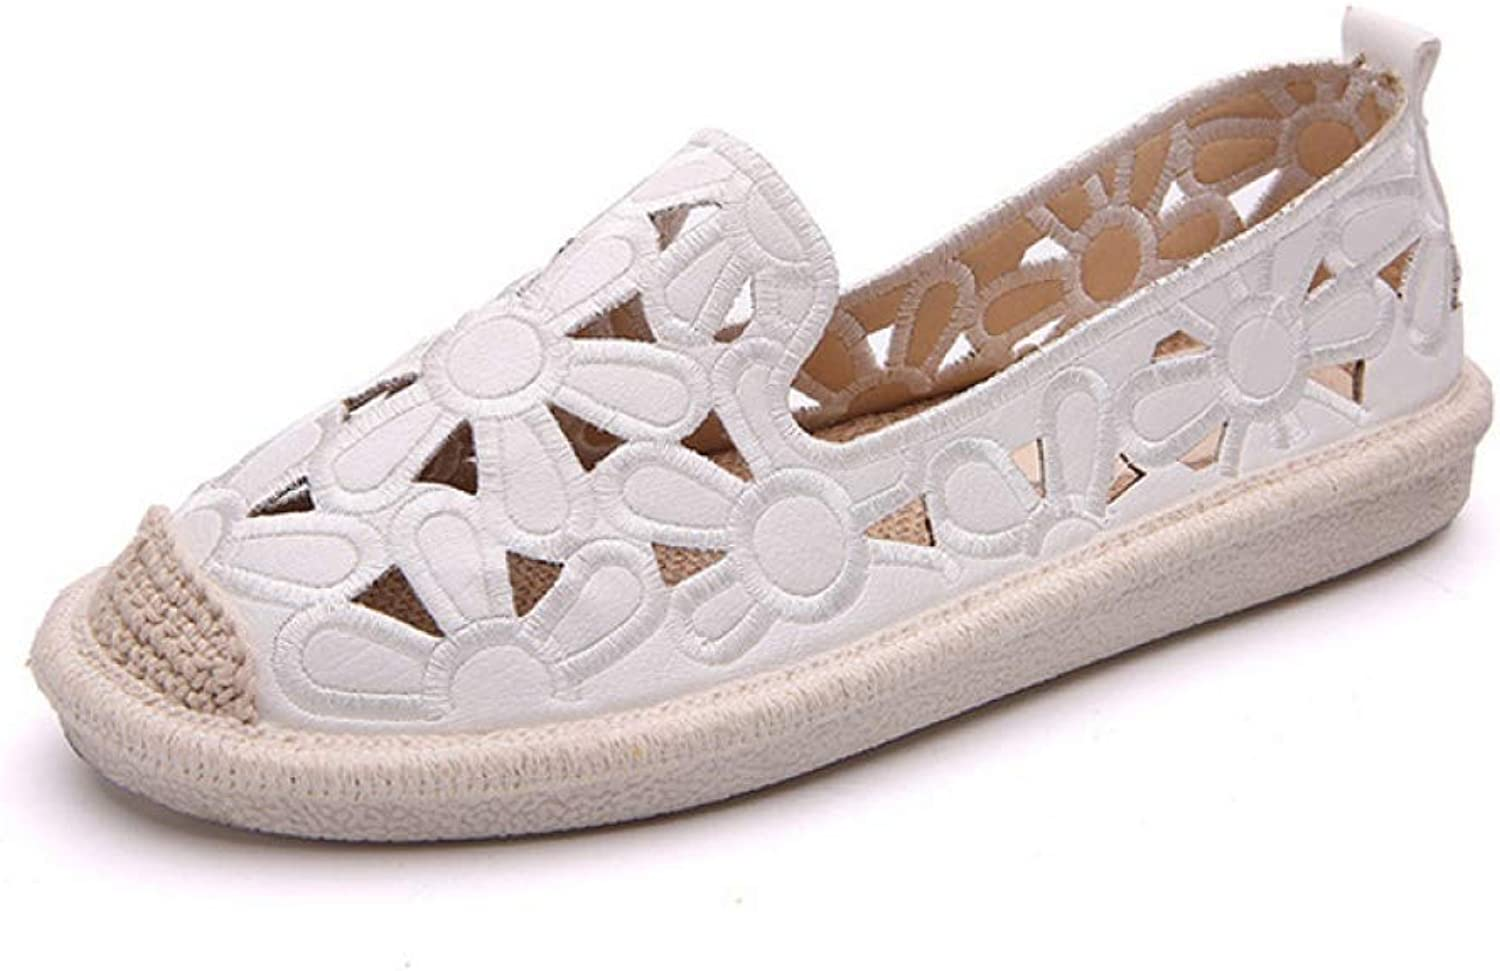 Women's Flats Loafers Hollow Out Floral Straw Fisherman shoes Casual Slip on Boat shoes